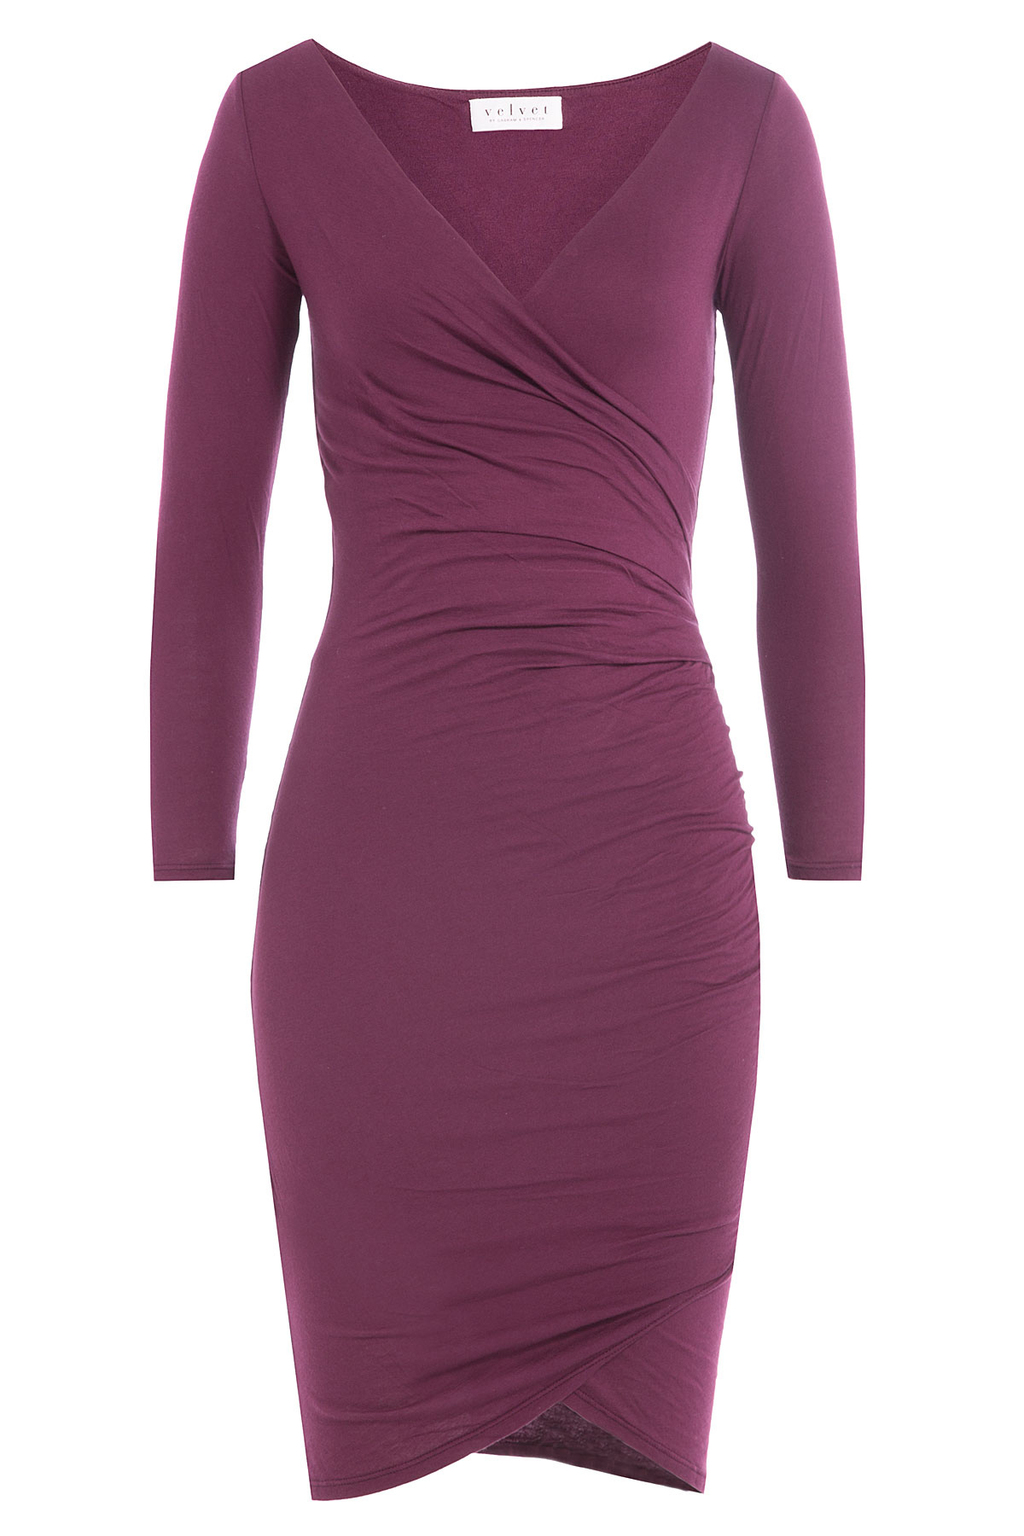 Draped Cotton Dress - style: faux wrap/wrap; neckline: v-neck; fit: tight; pattern: plain; predominant colour: purple; occasions: evening; length: on the knee; fibres: cotton - 100%; sleeve length: long sleeve; sleeve style: standard; texture group: jersey - clingy; pattern type: fabric; season: a/w 2016; wardrobe: event